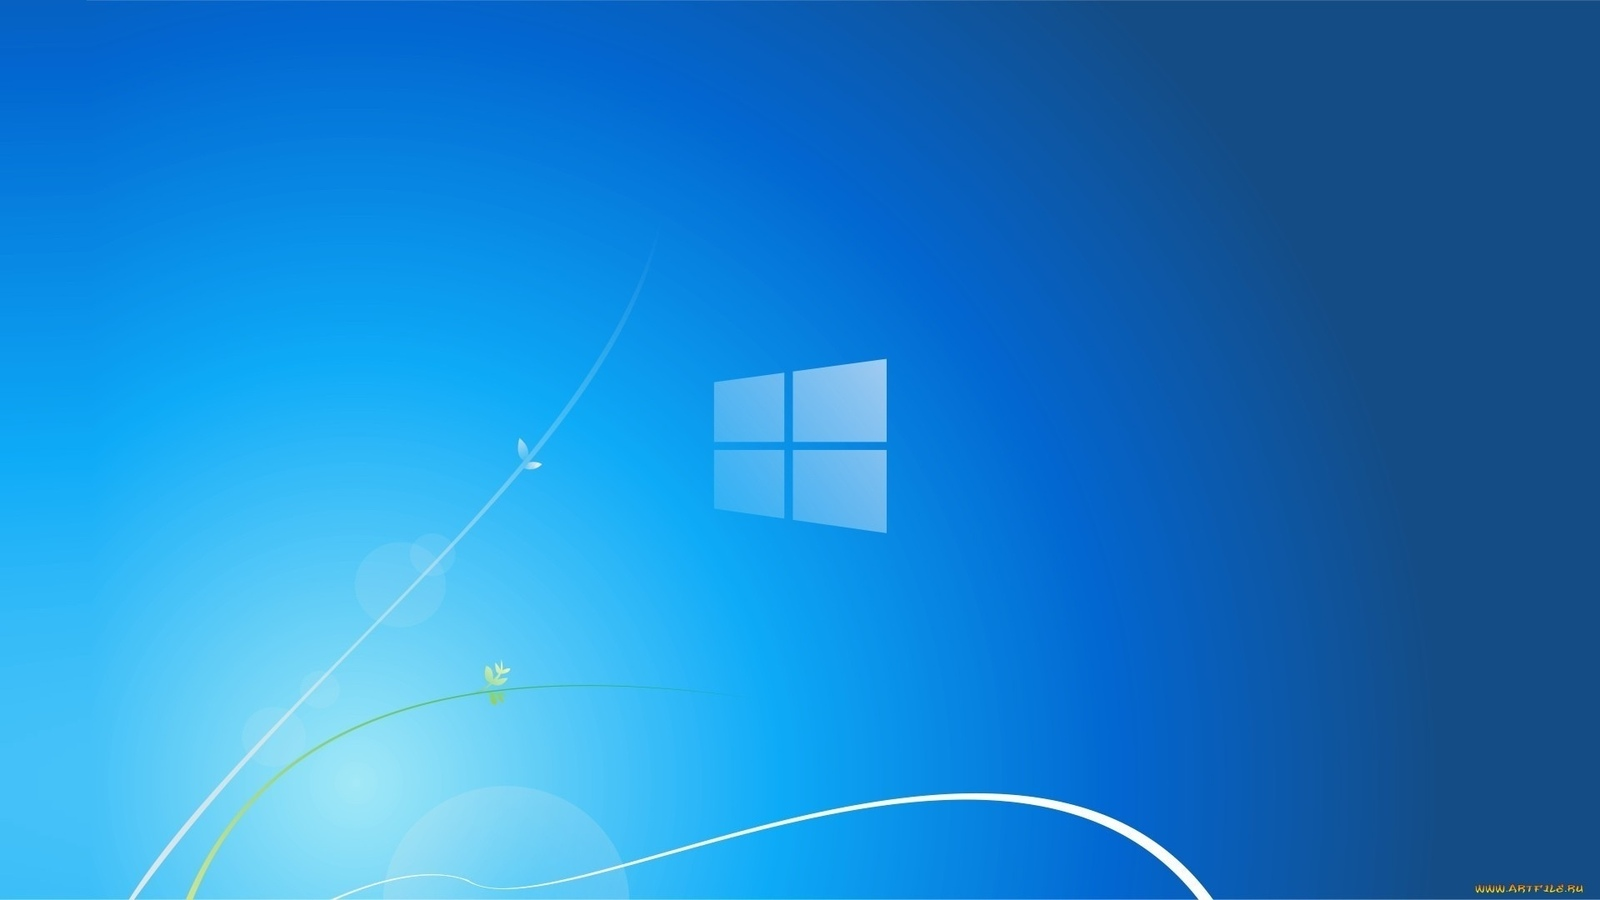 Windows 8 синий microsoft фон обои для